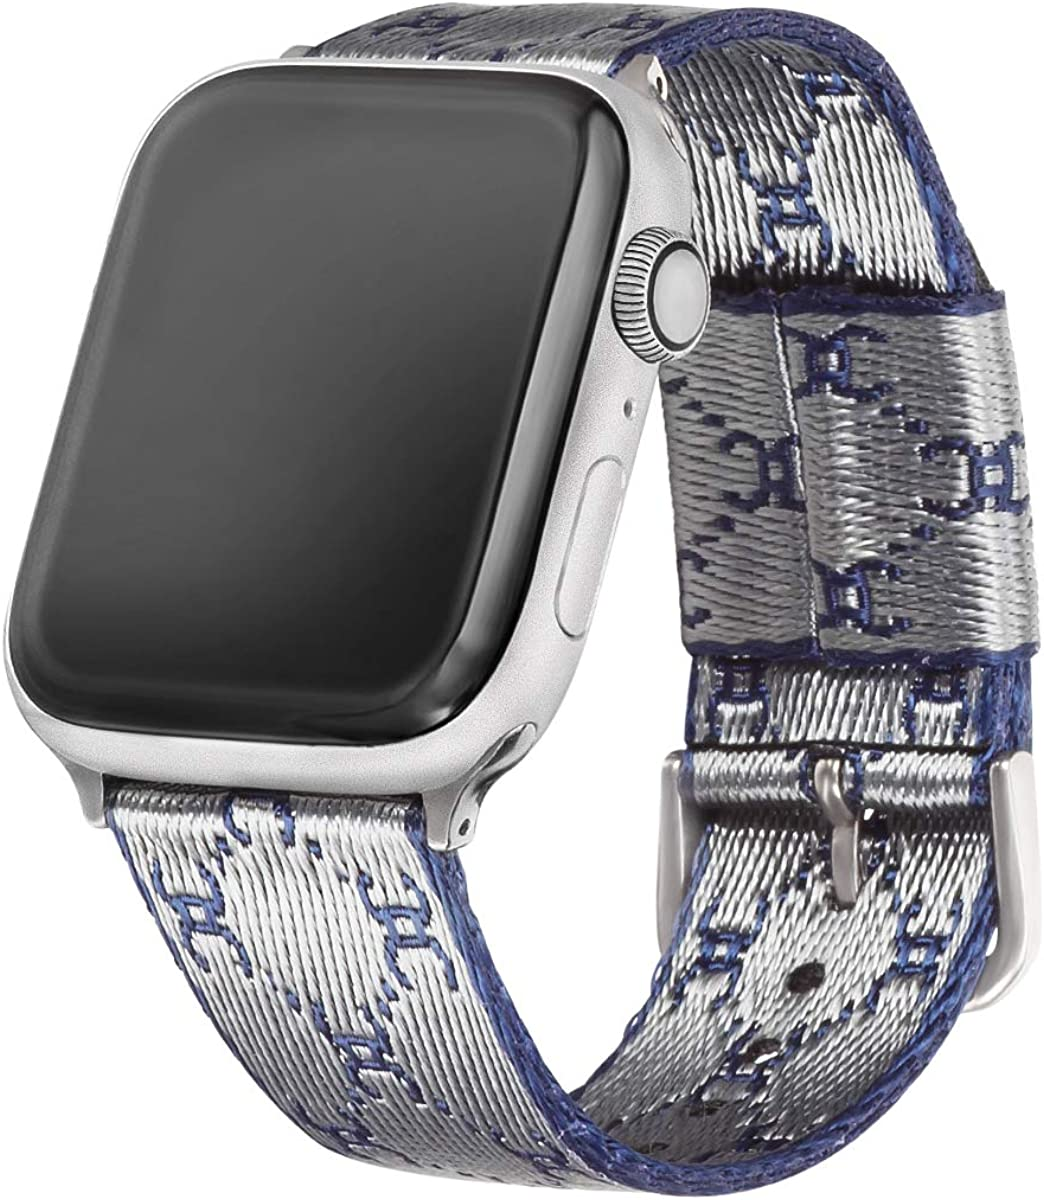 EverSnows Nylon Bands Compatible with Apple Watch Women Man, Soft Breathable Woven Strap with Pattern Replacement for iWatch Series 6/5/4/3/2/1 Bands